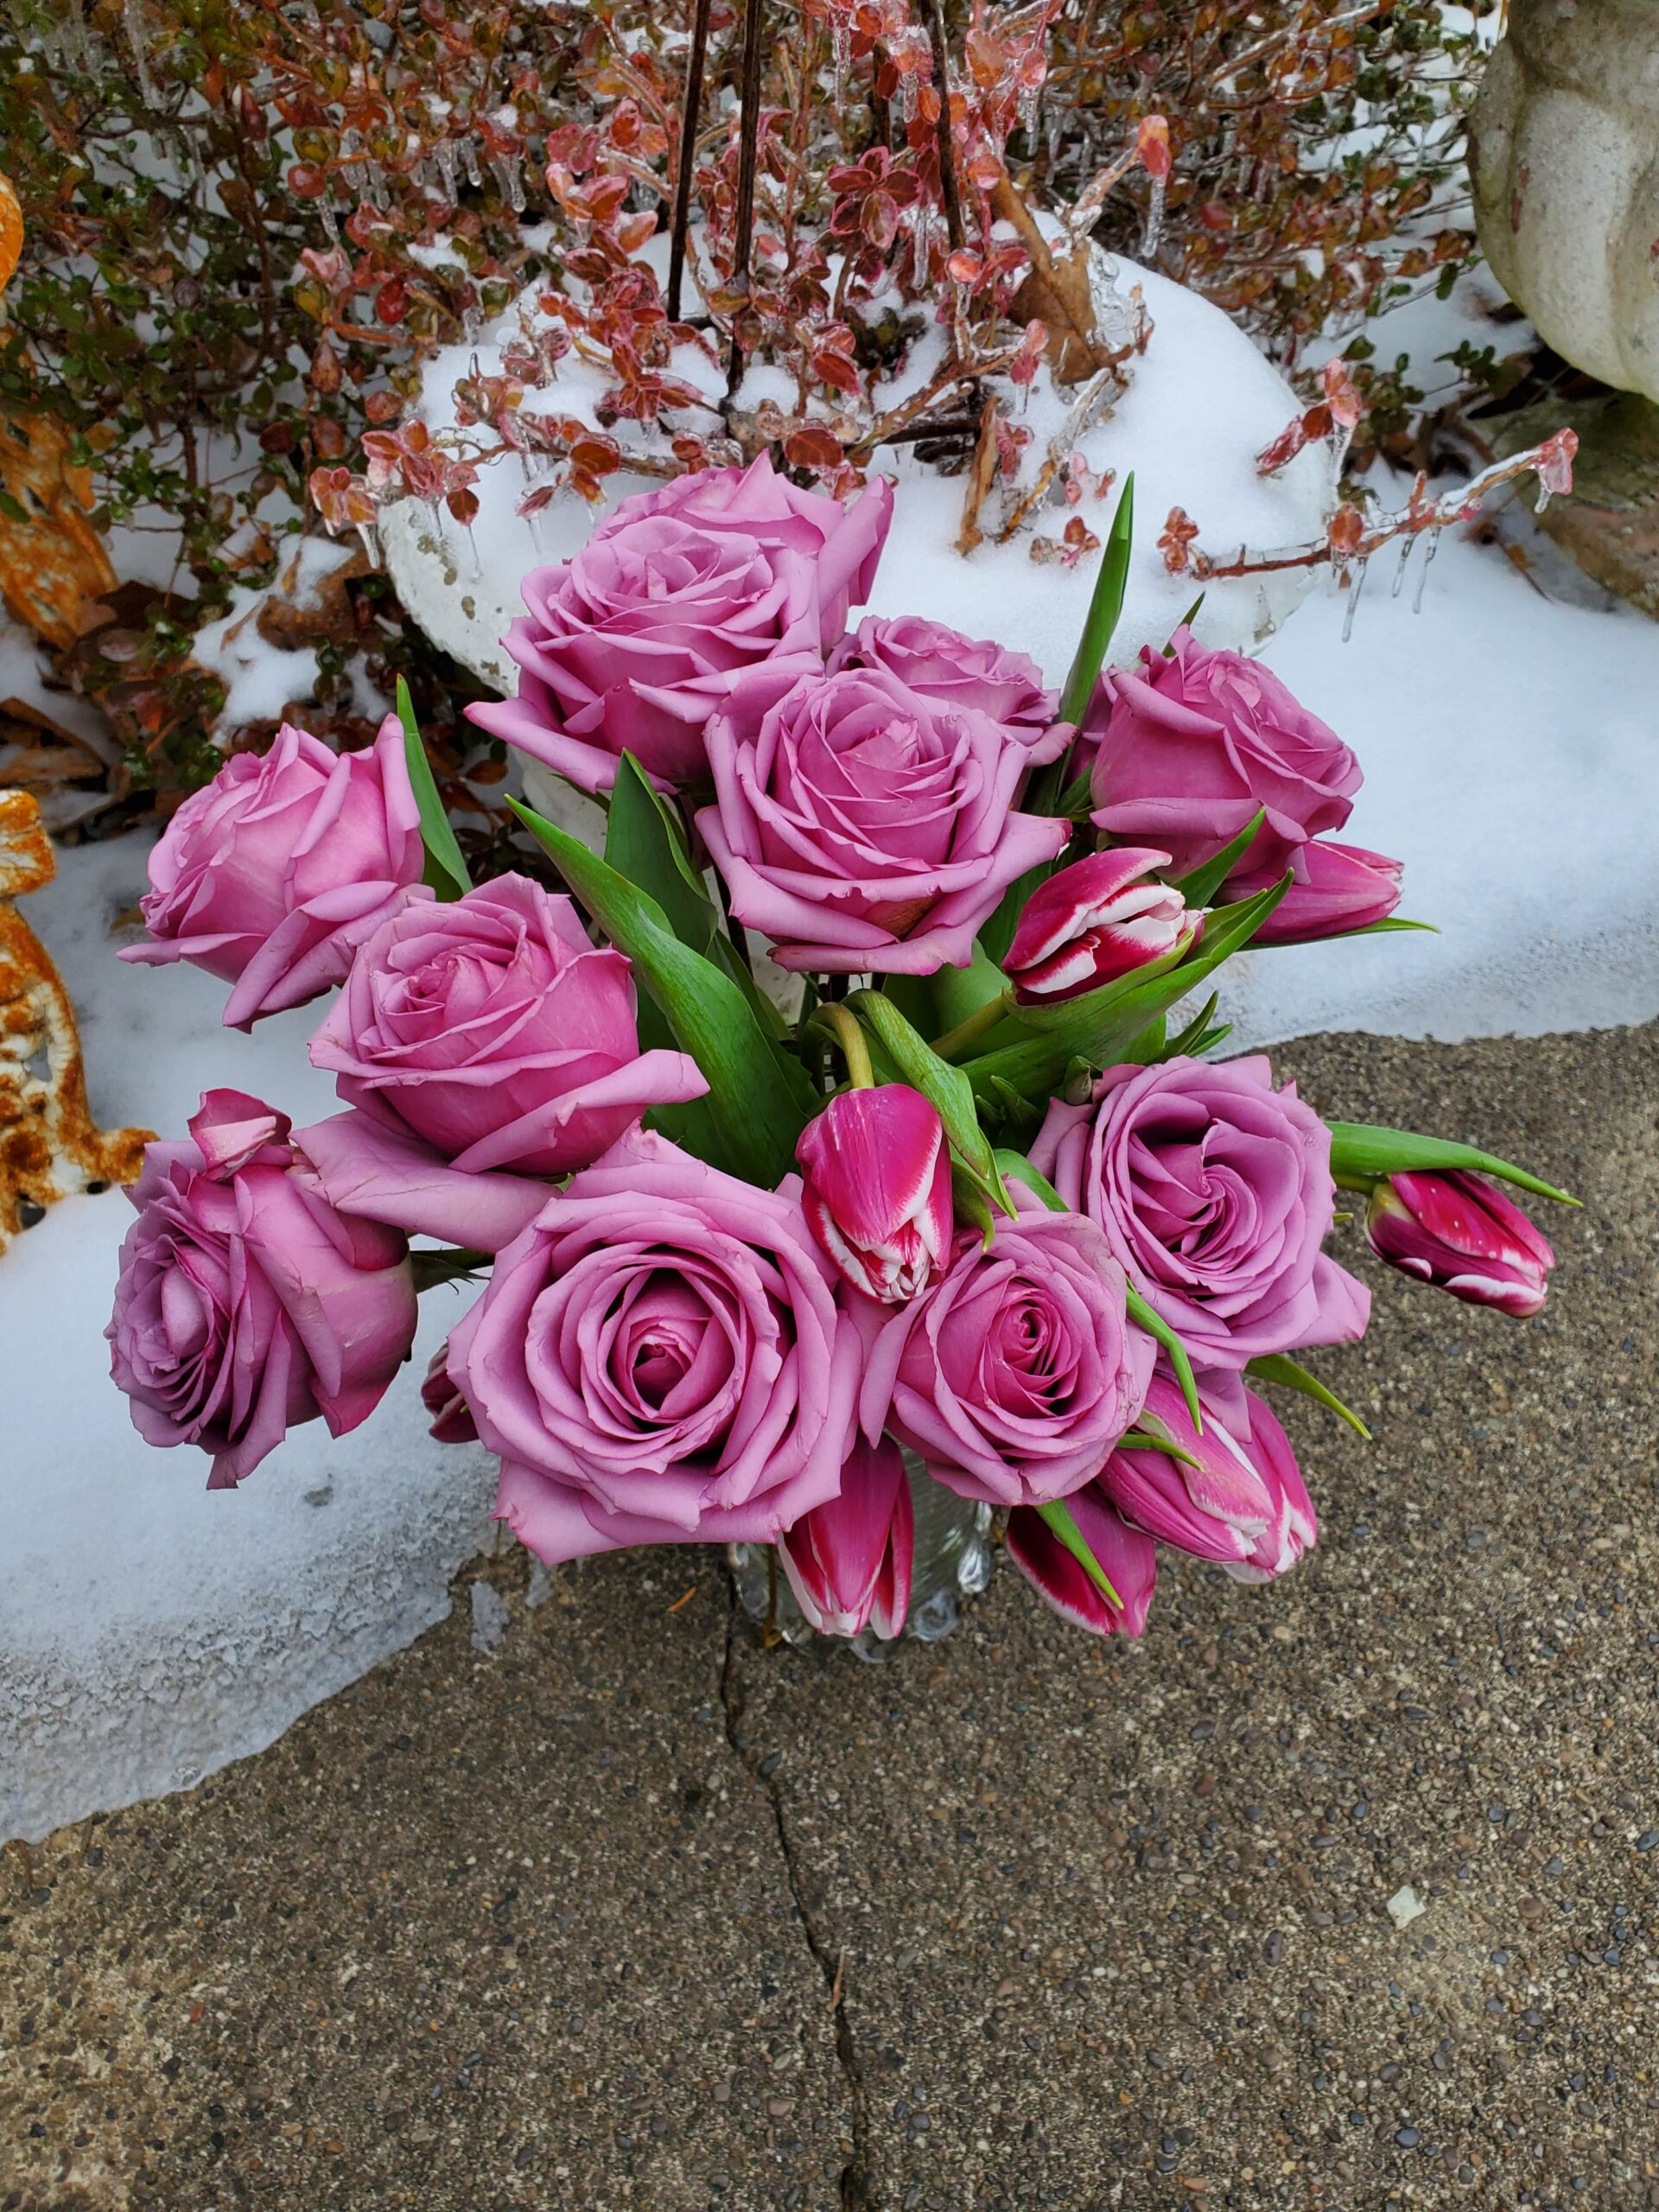 Pink Roses and tulips bouquet outside during a winter storm